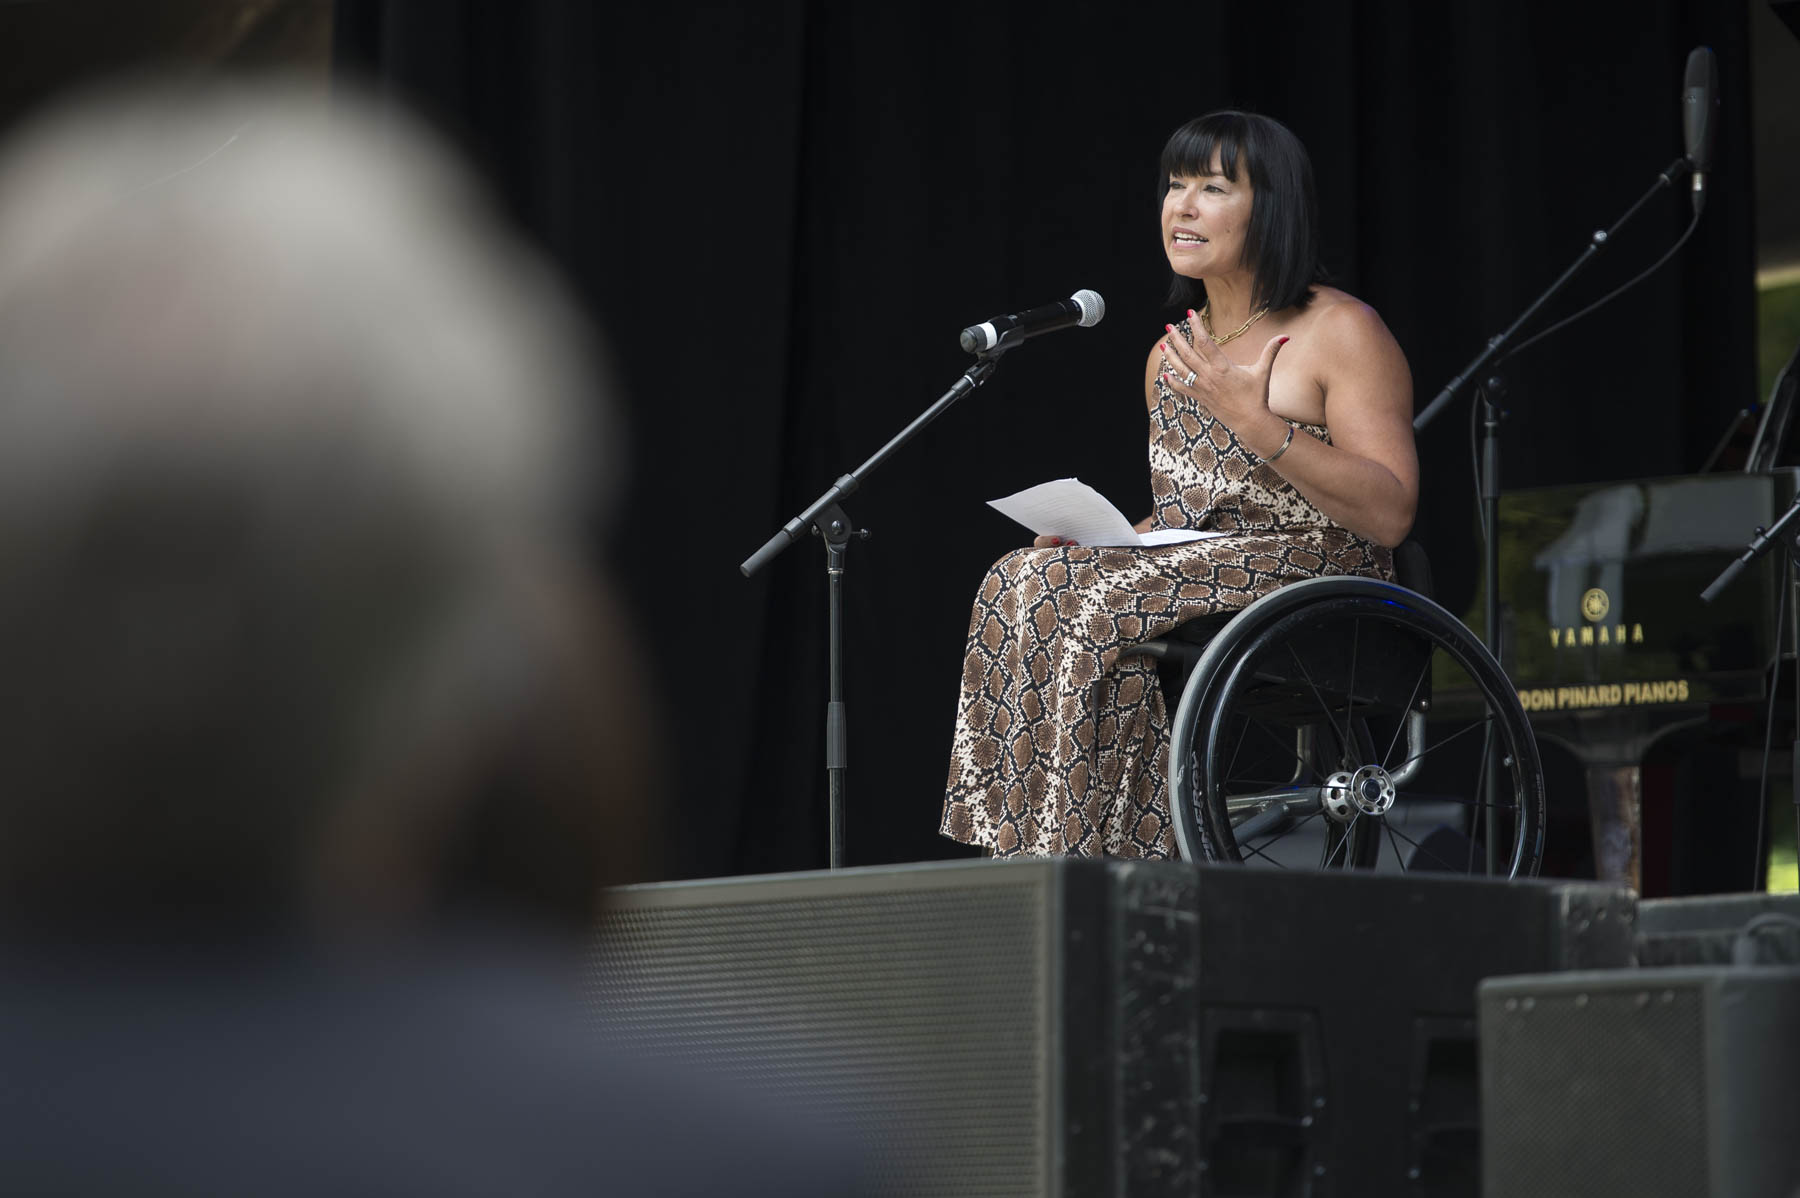 The Honourable Chantal Petitclerc, C.C., took the stage and delivered inspirational remarks to her fellow Order of Canada members.